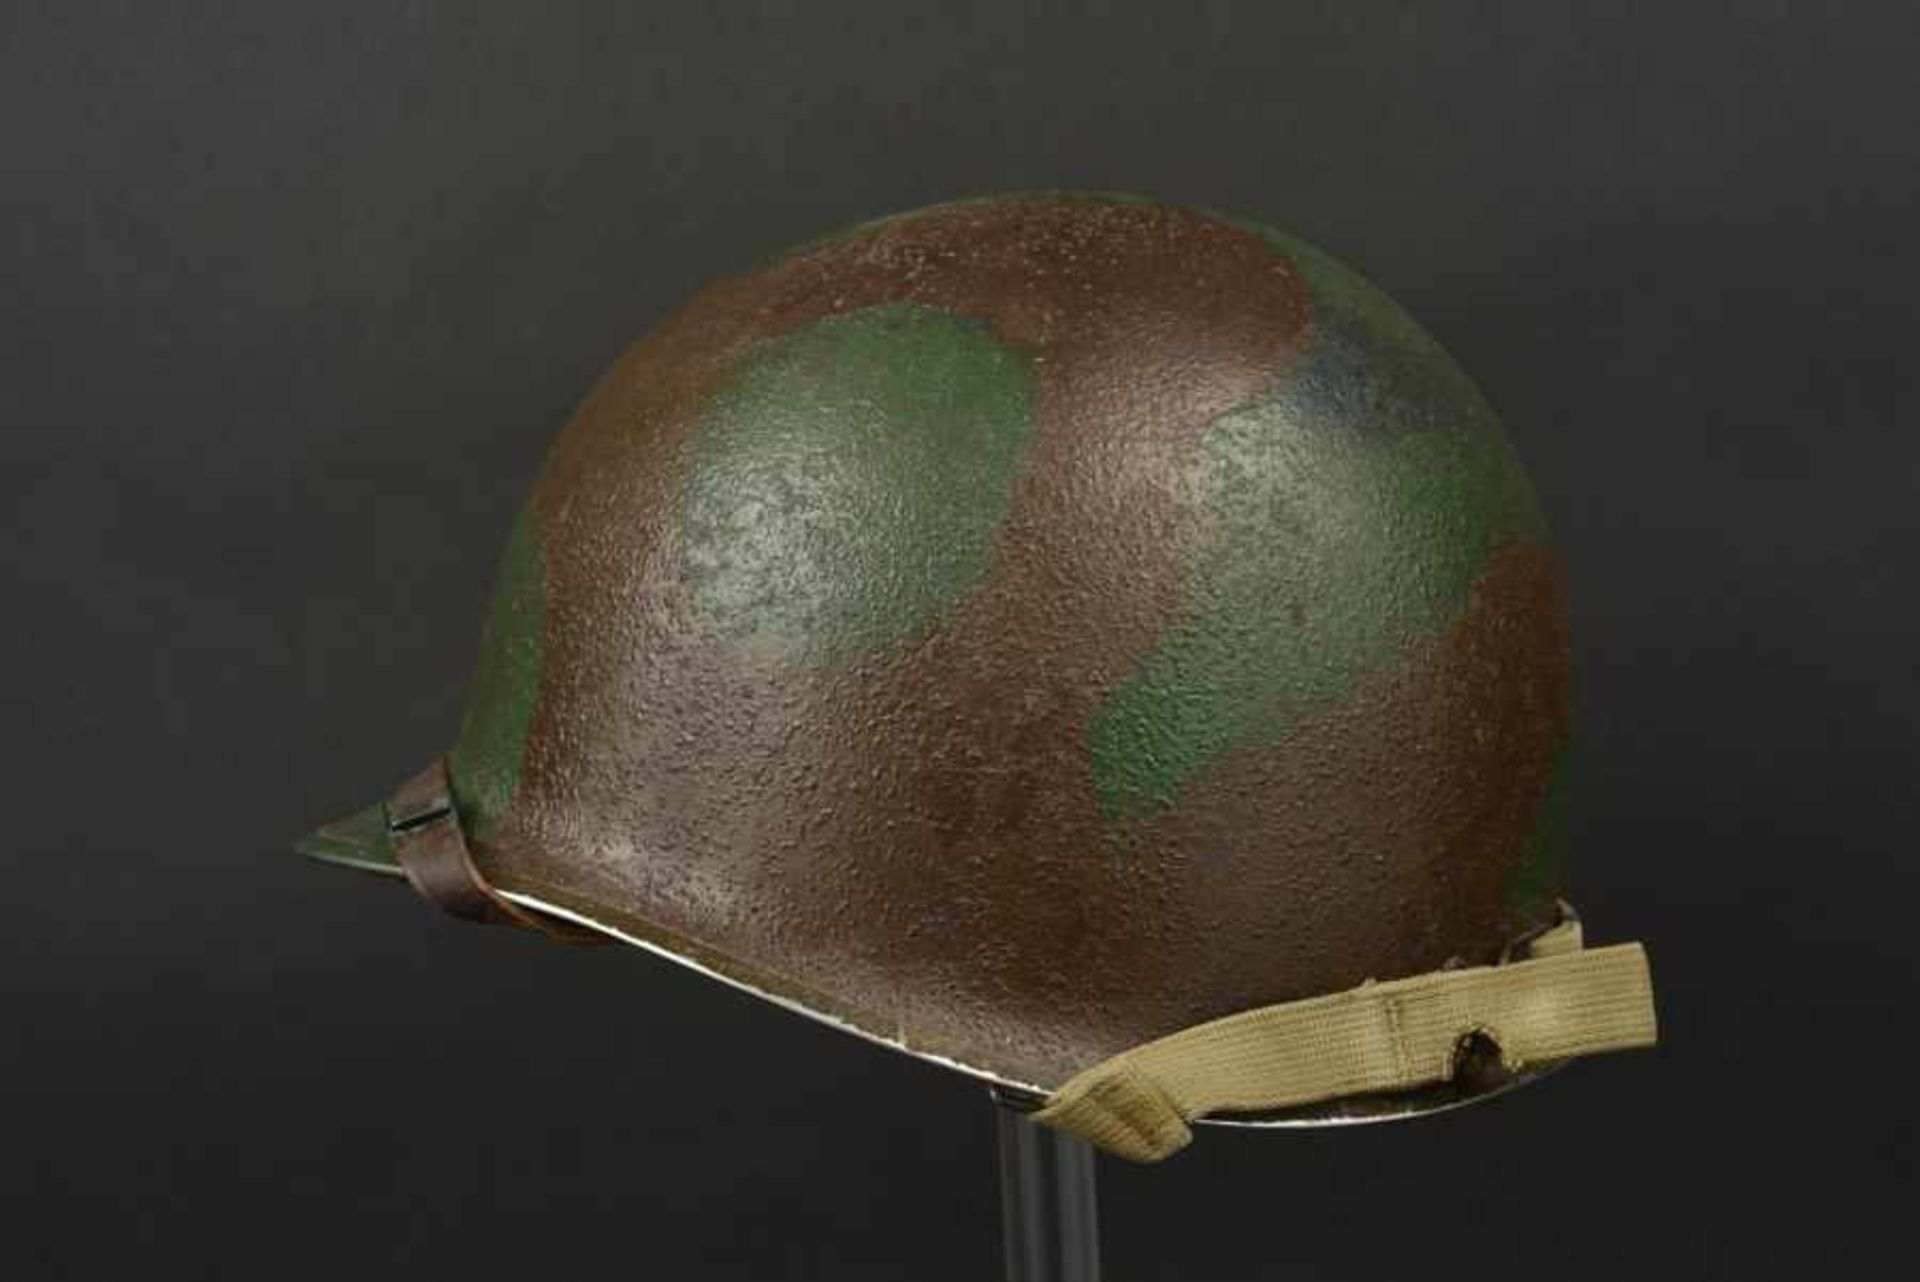 Casque camouflé d'un capitaine de la 2ème DB française. Camouflaged helmet of a Captain of the 2nd - Bild 4 aus 4